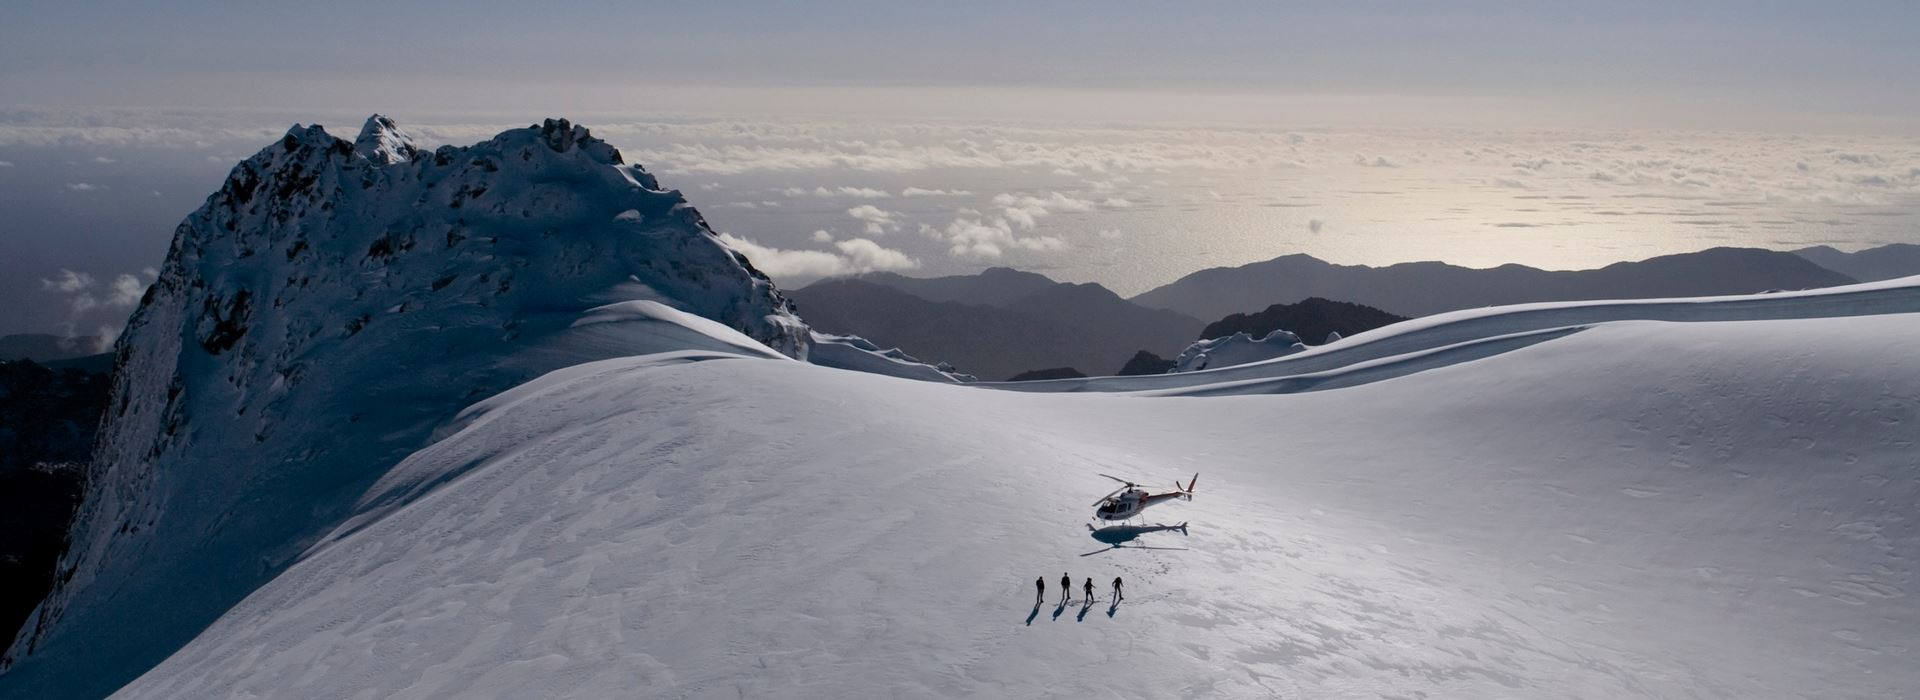 Luxury Skiing Holidays in New Zealand